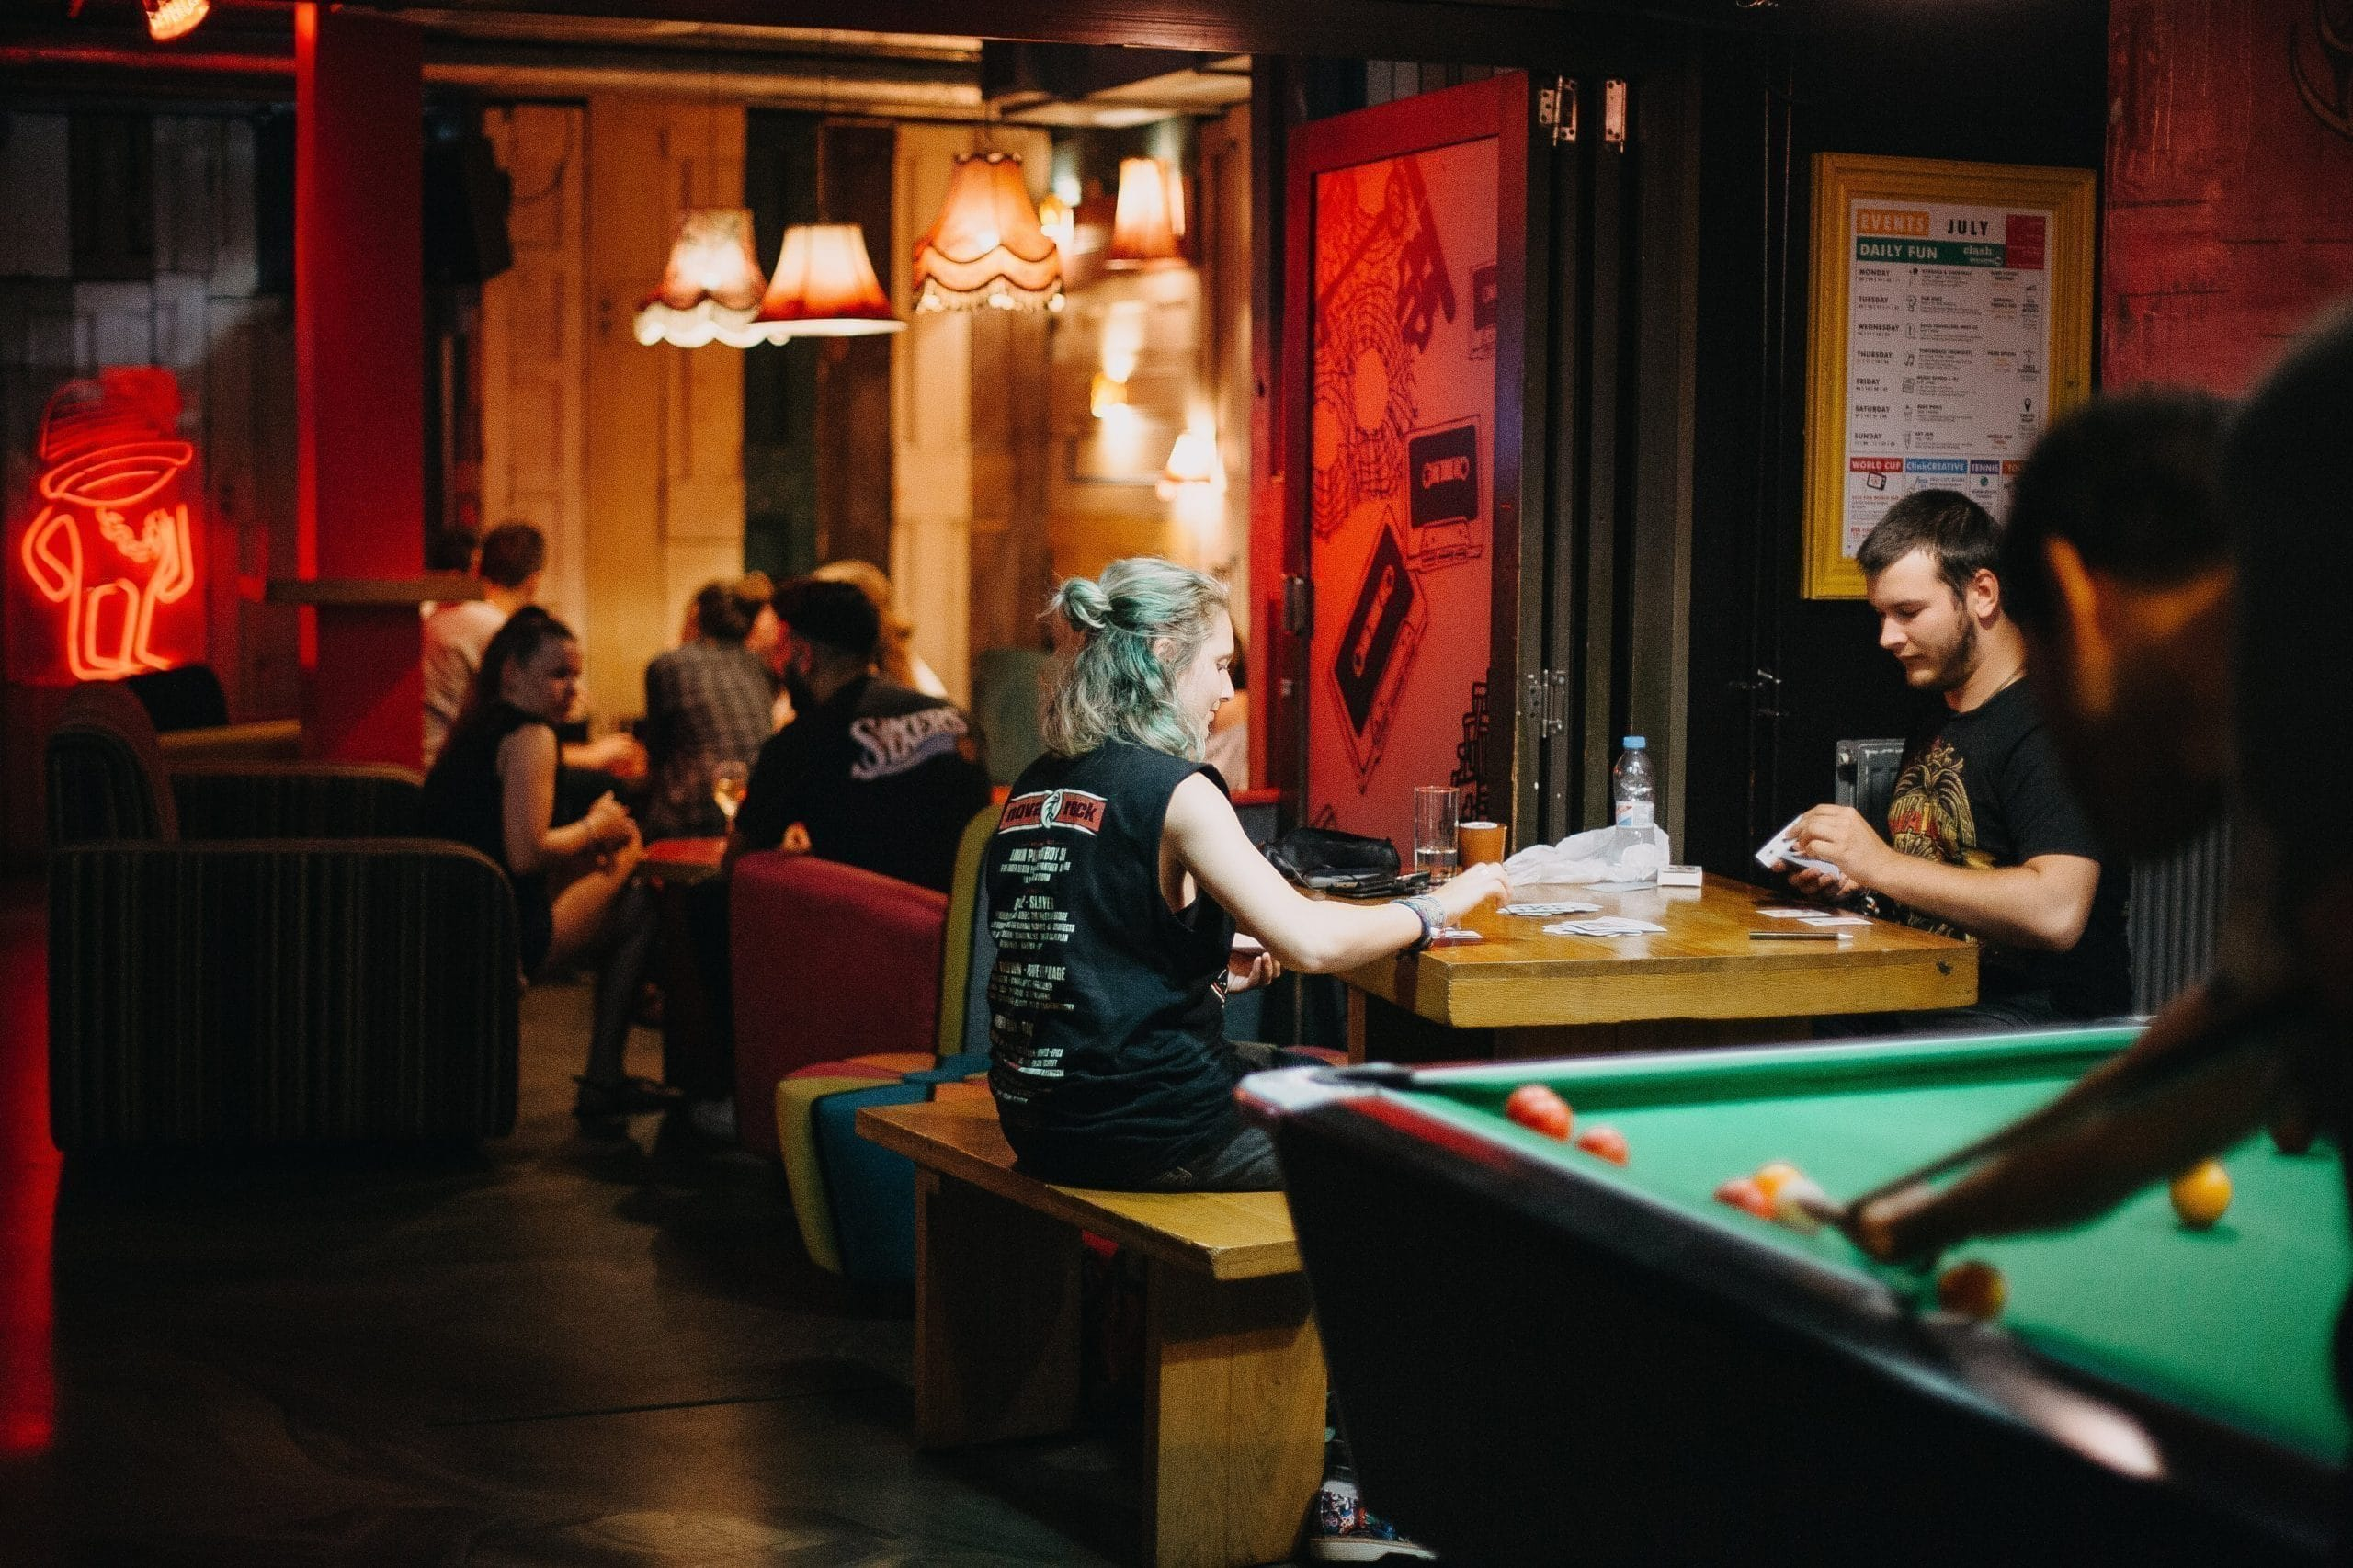 Young people sitting and relaxing in a bar